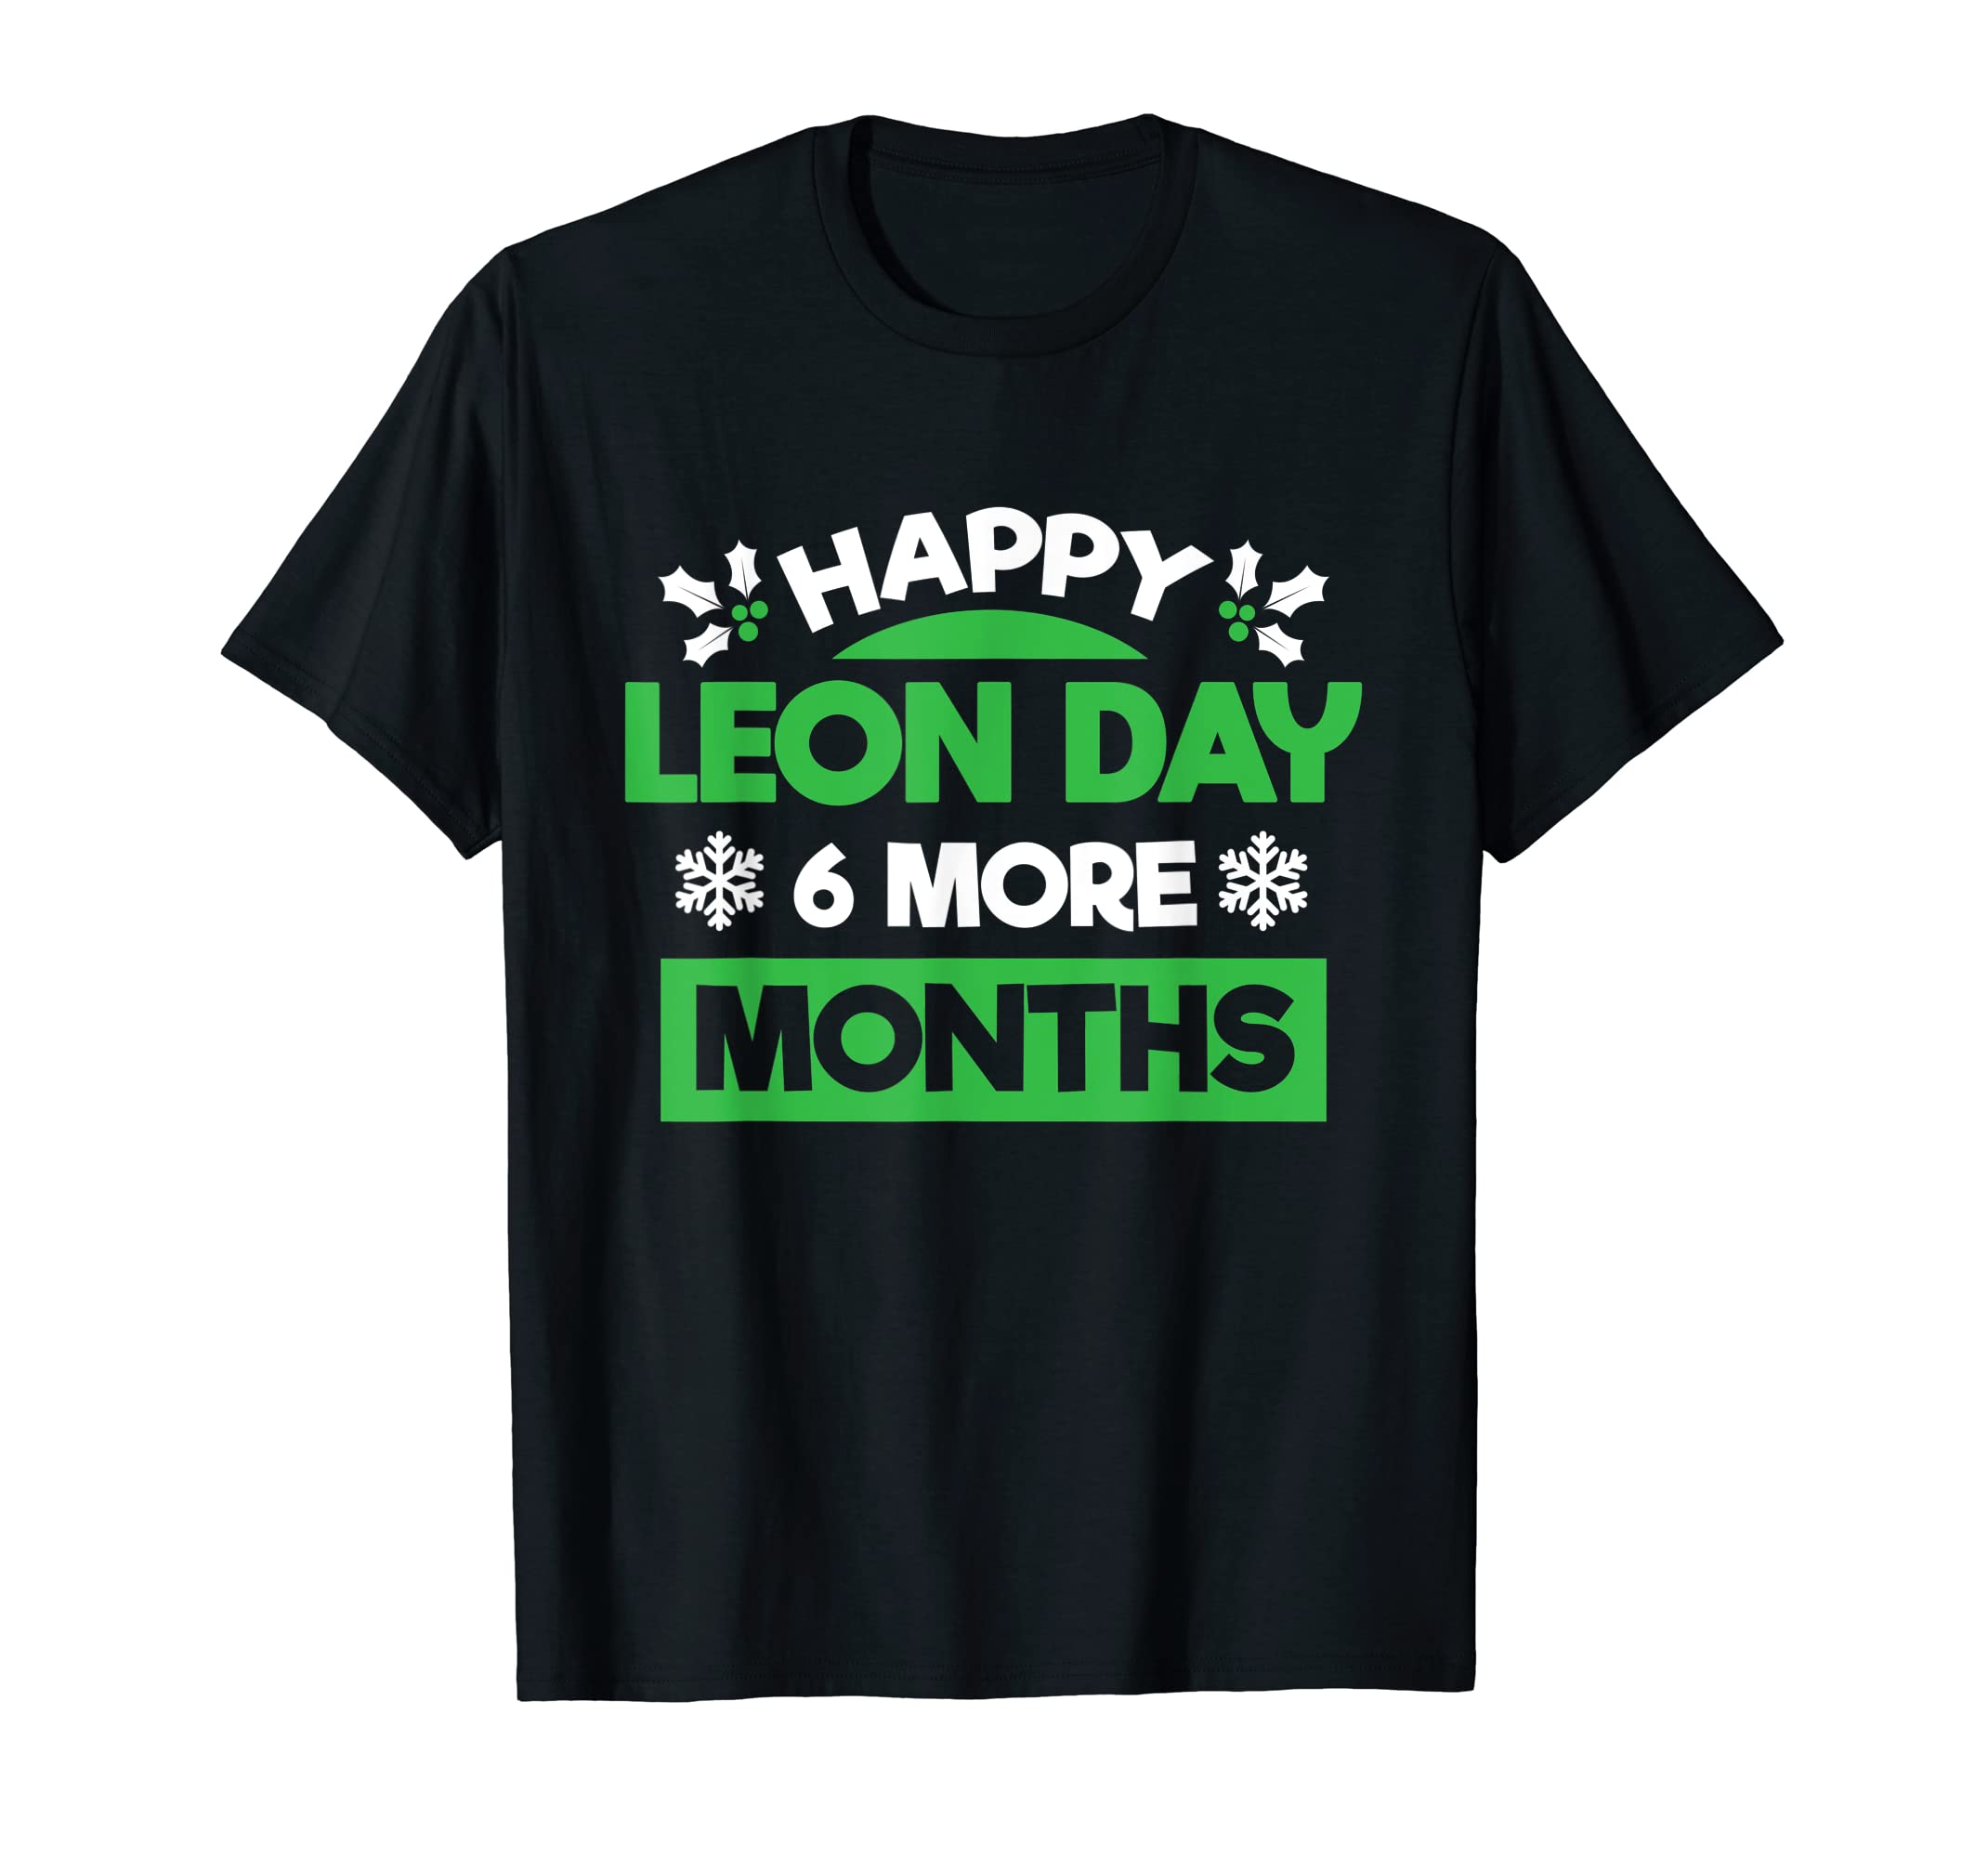 Happy Leon Day T Shirt 6 More Months To Christmas-Men's T-Shirt-Black